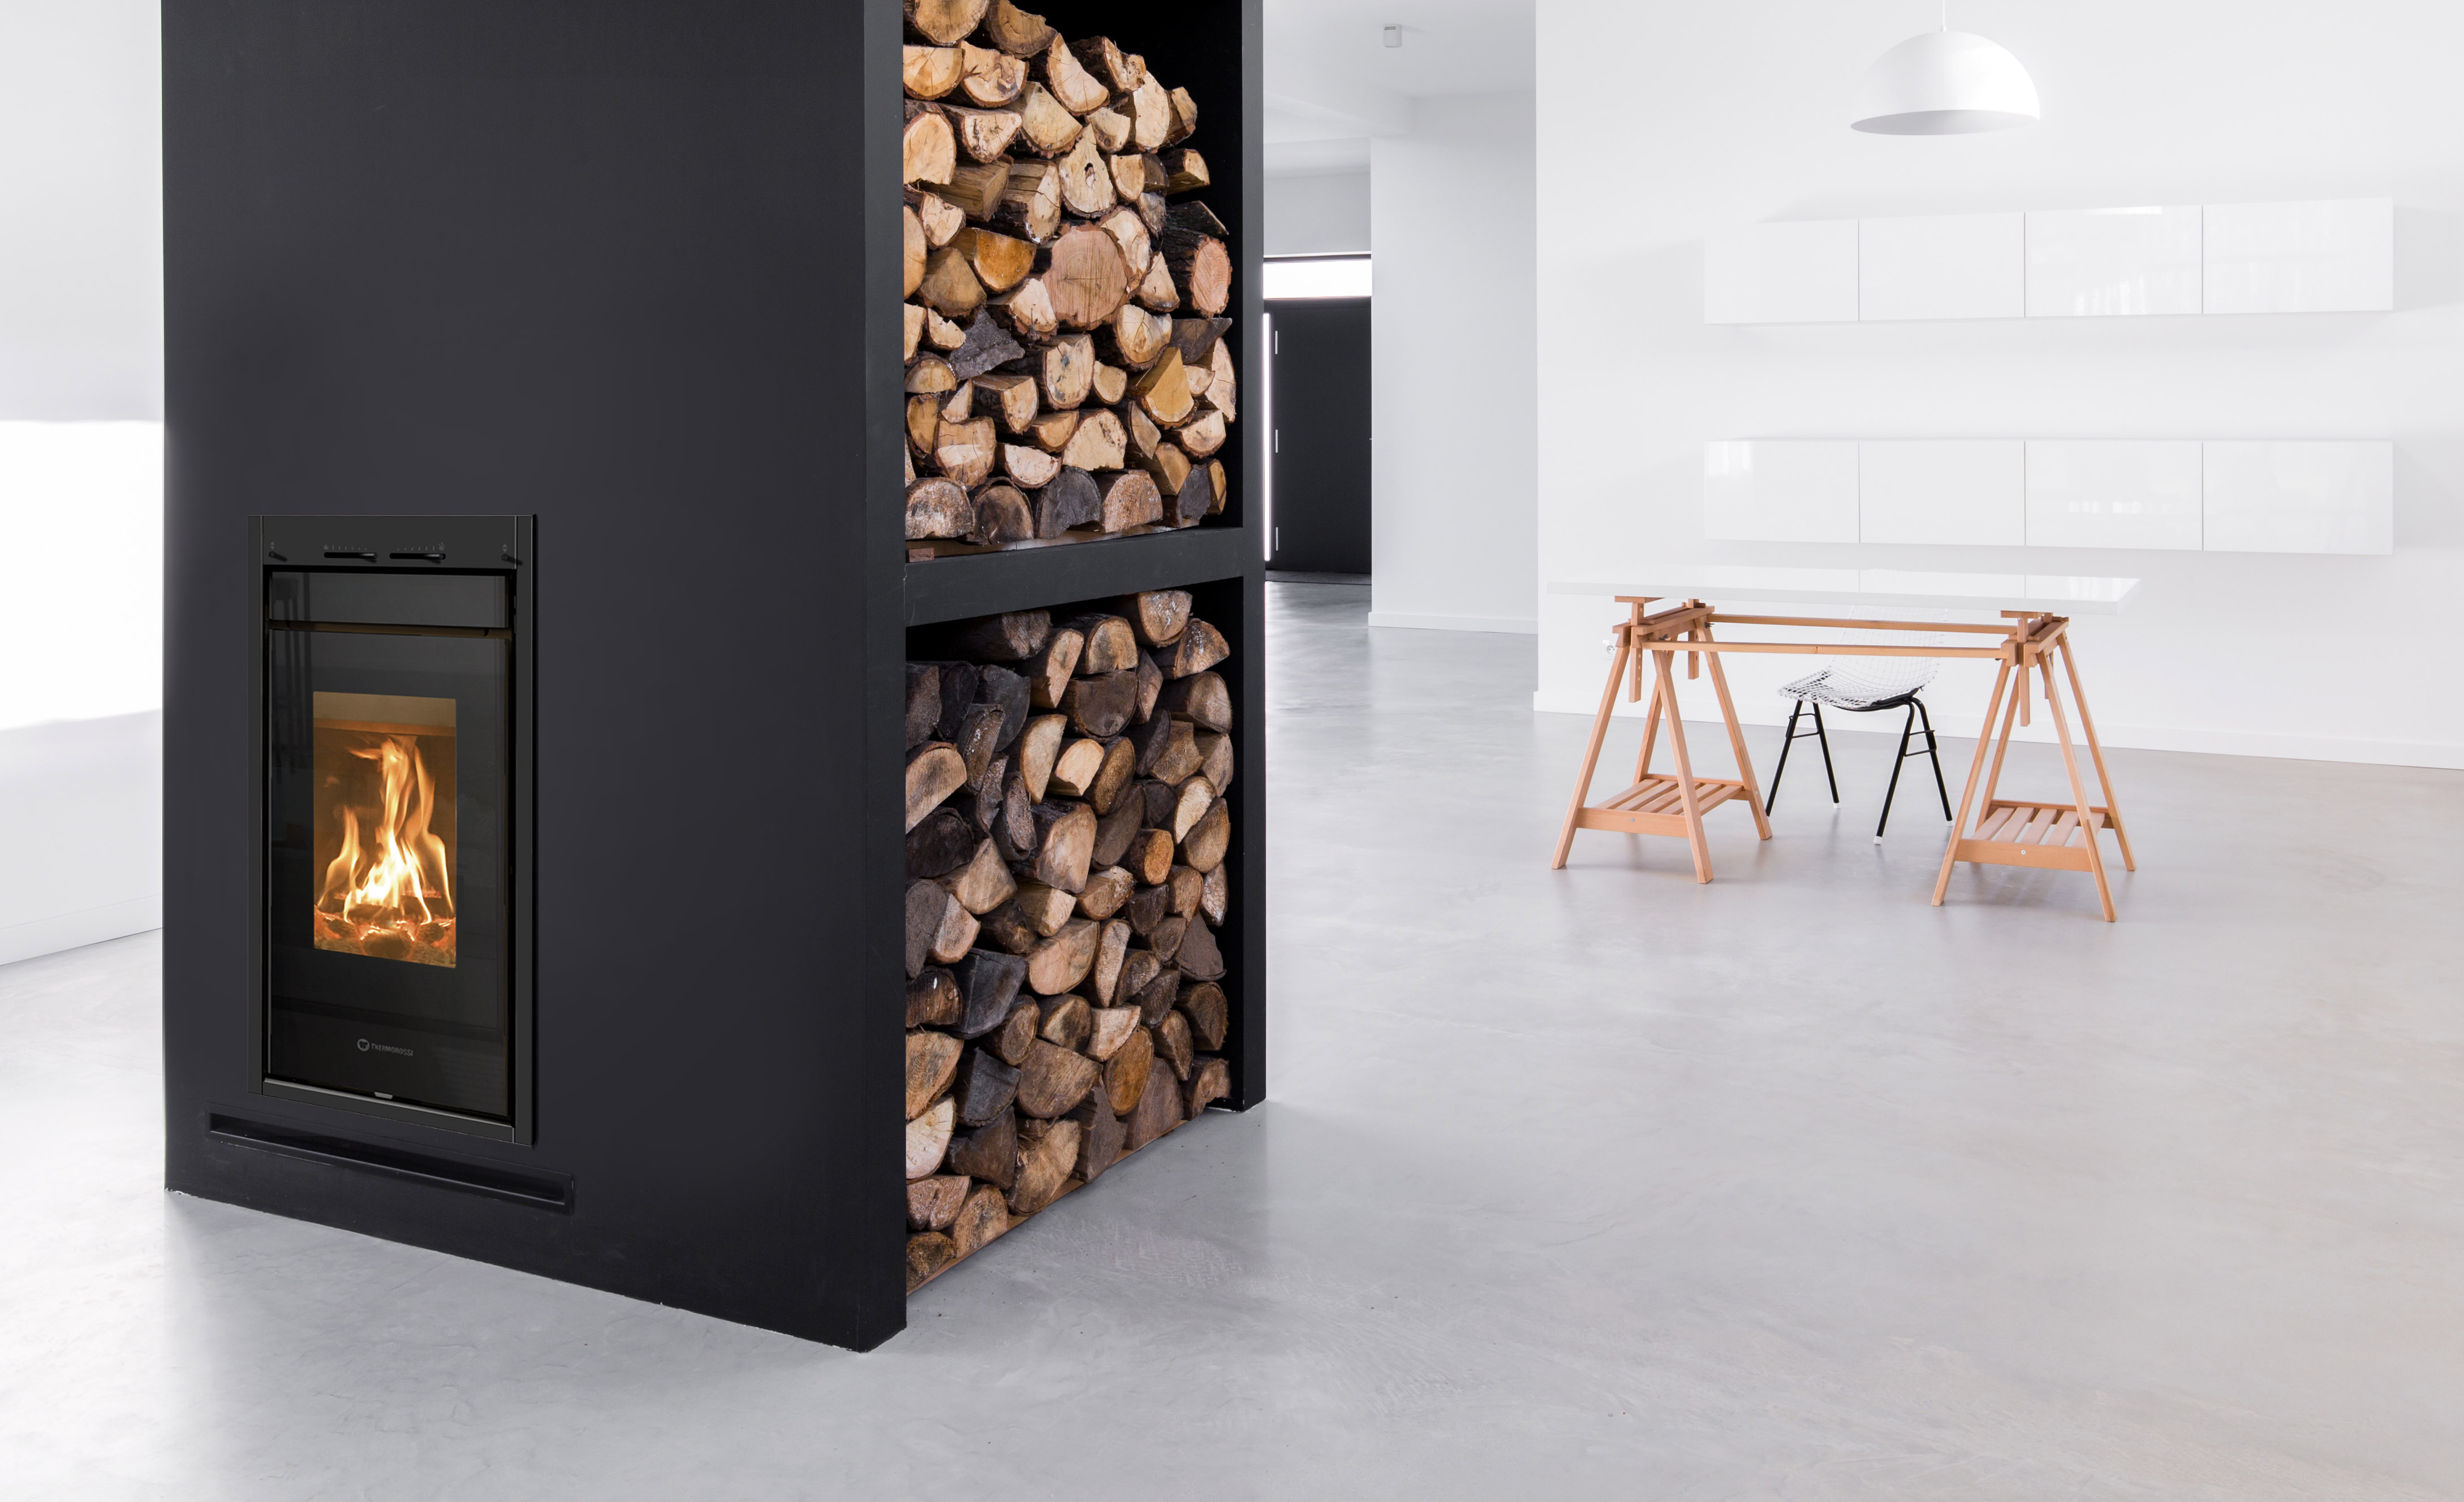 po les b ches vertical line wood s fires chauffage. Black Bedroom Furniture Sets. Home Design Ideas